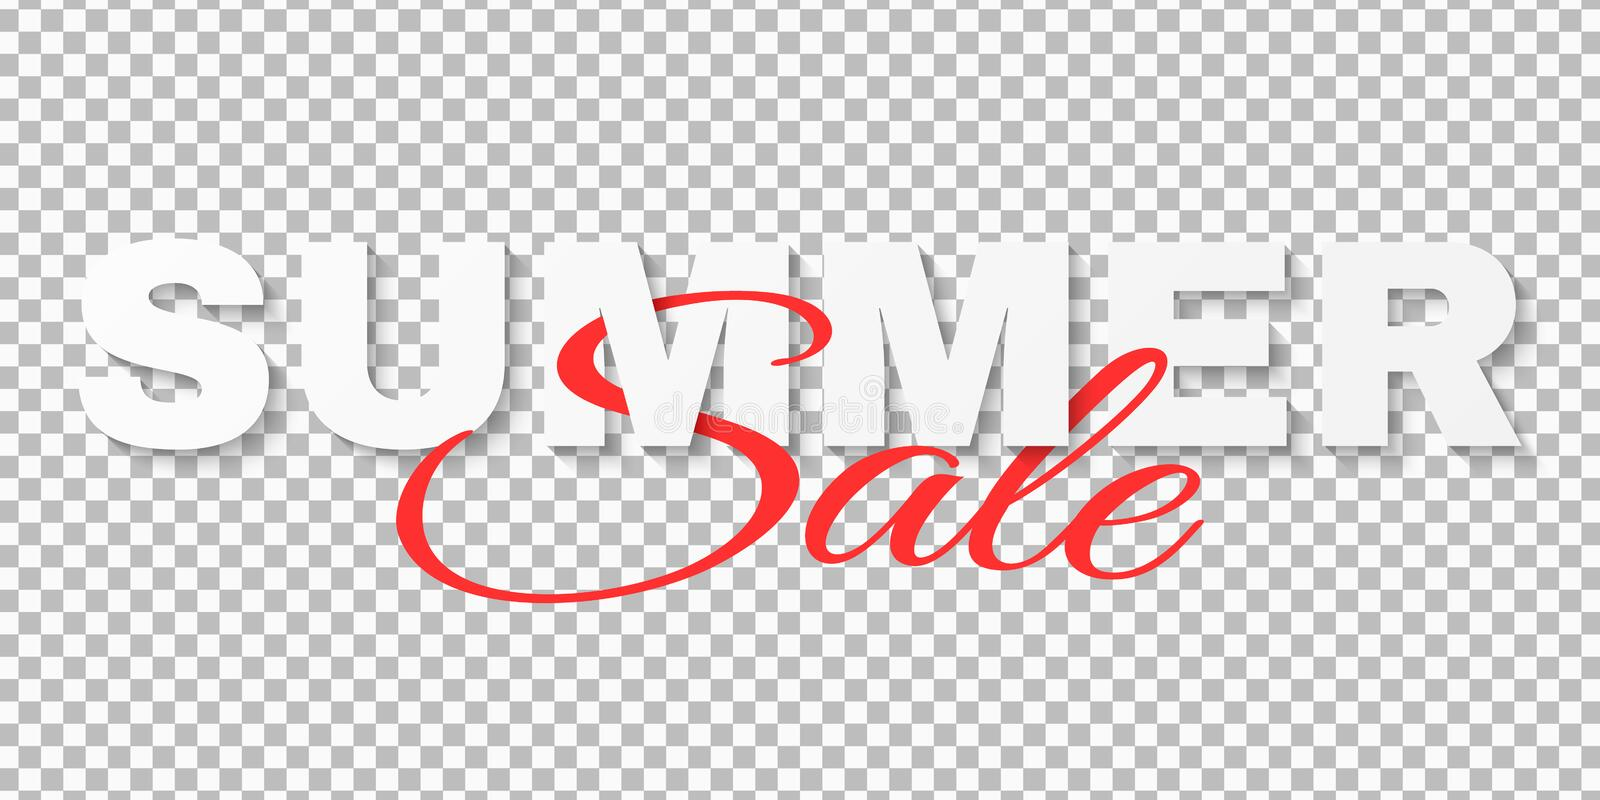 Creative text banner for Summer Sale isolated on transparent background. 3d text. Special offer. Big discounts. Beautiful royalty free illustration